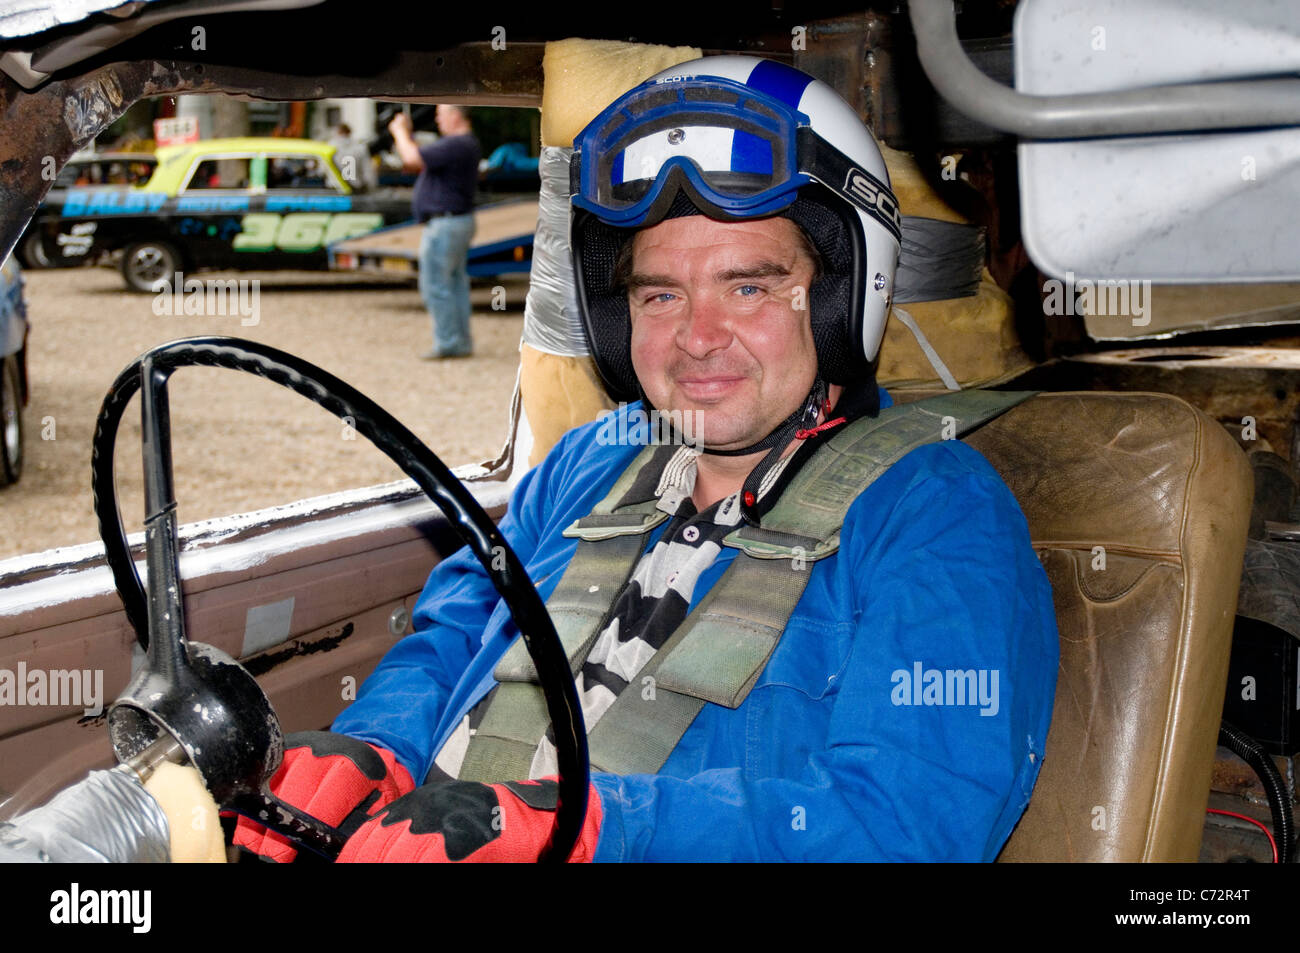 banger racing driver before a race - Stock Image